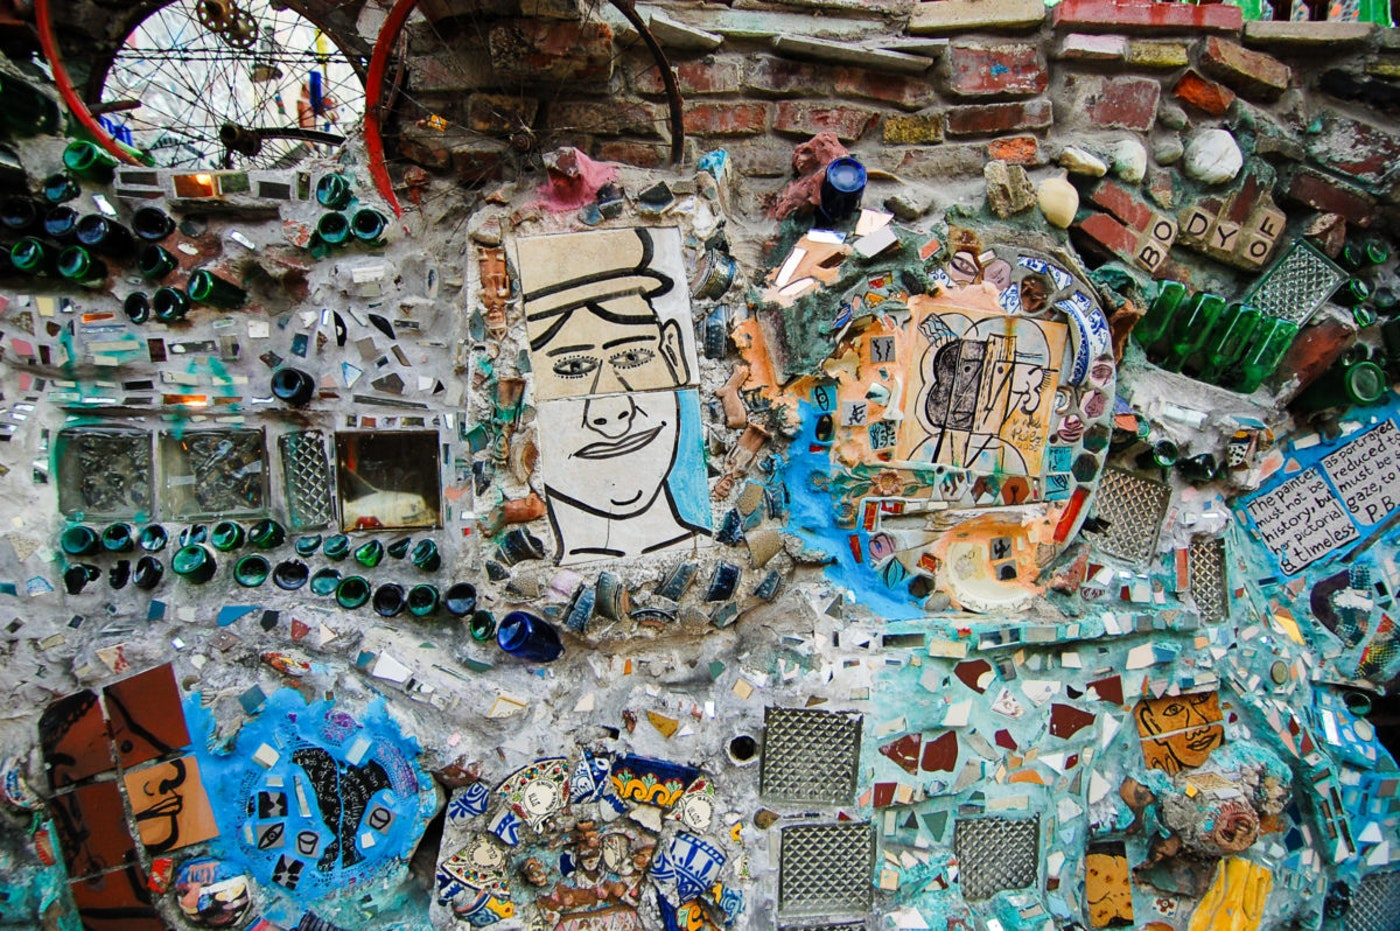 Philadelphia's Magic Gardens on South Street is a gallery space created by mosaic artist Isaiah Zagar. (Shutterstock Photo/Stephan Schlachter)